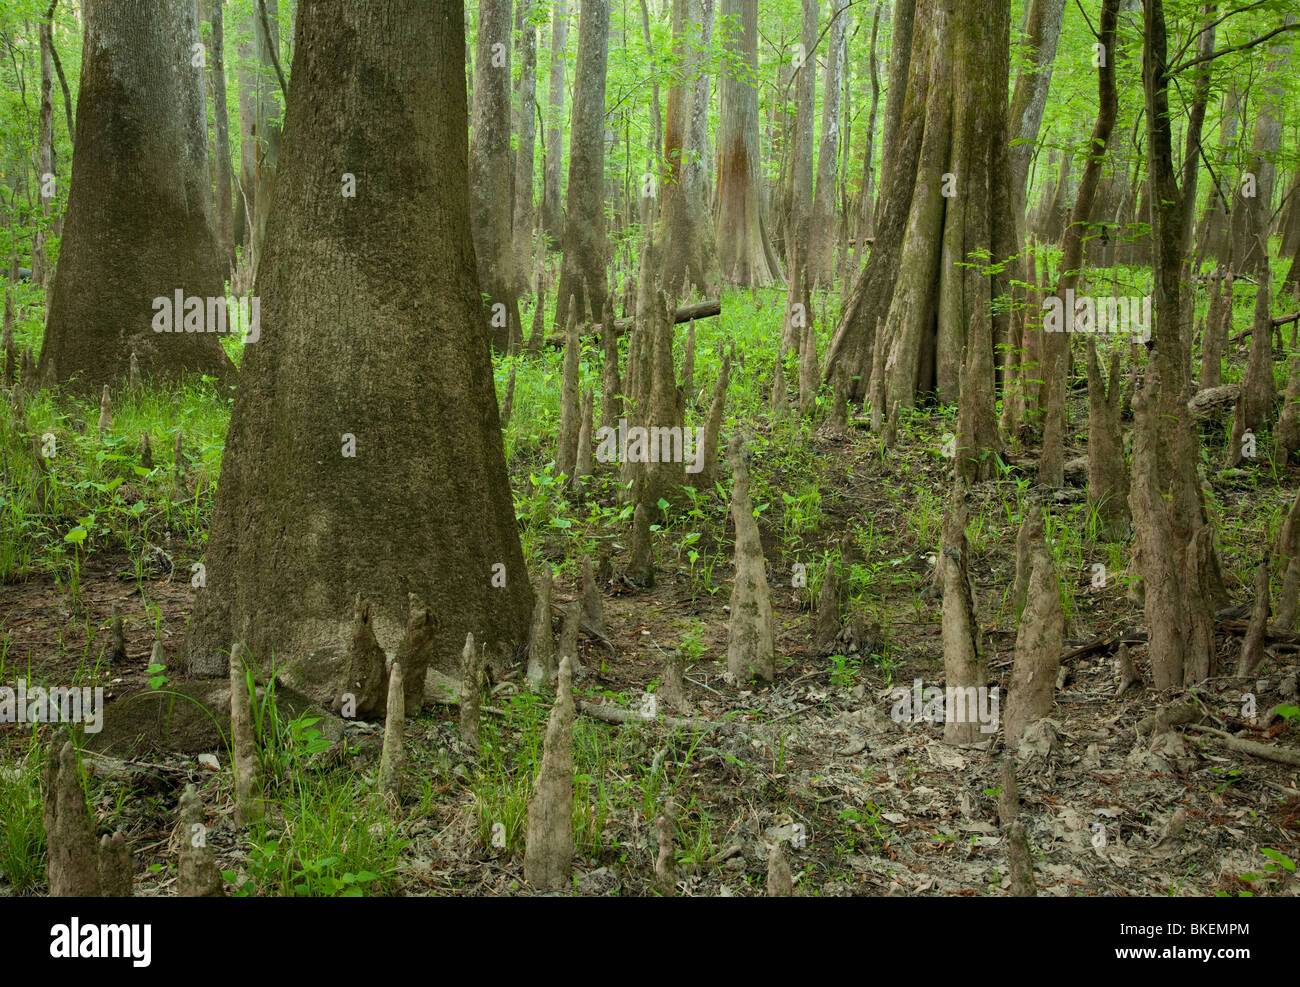 old-growth bottomland forest, Congaree National Park, South Carolina Stock Photo